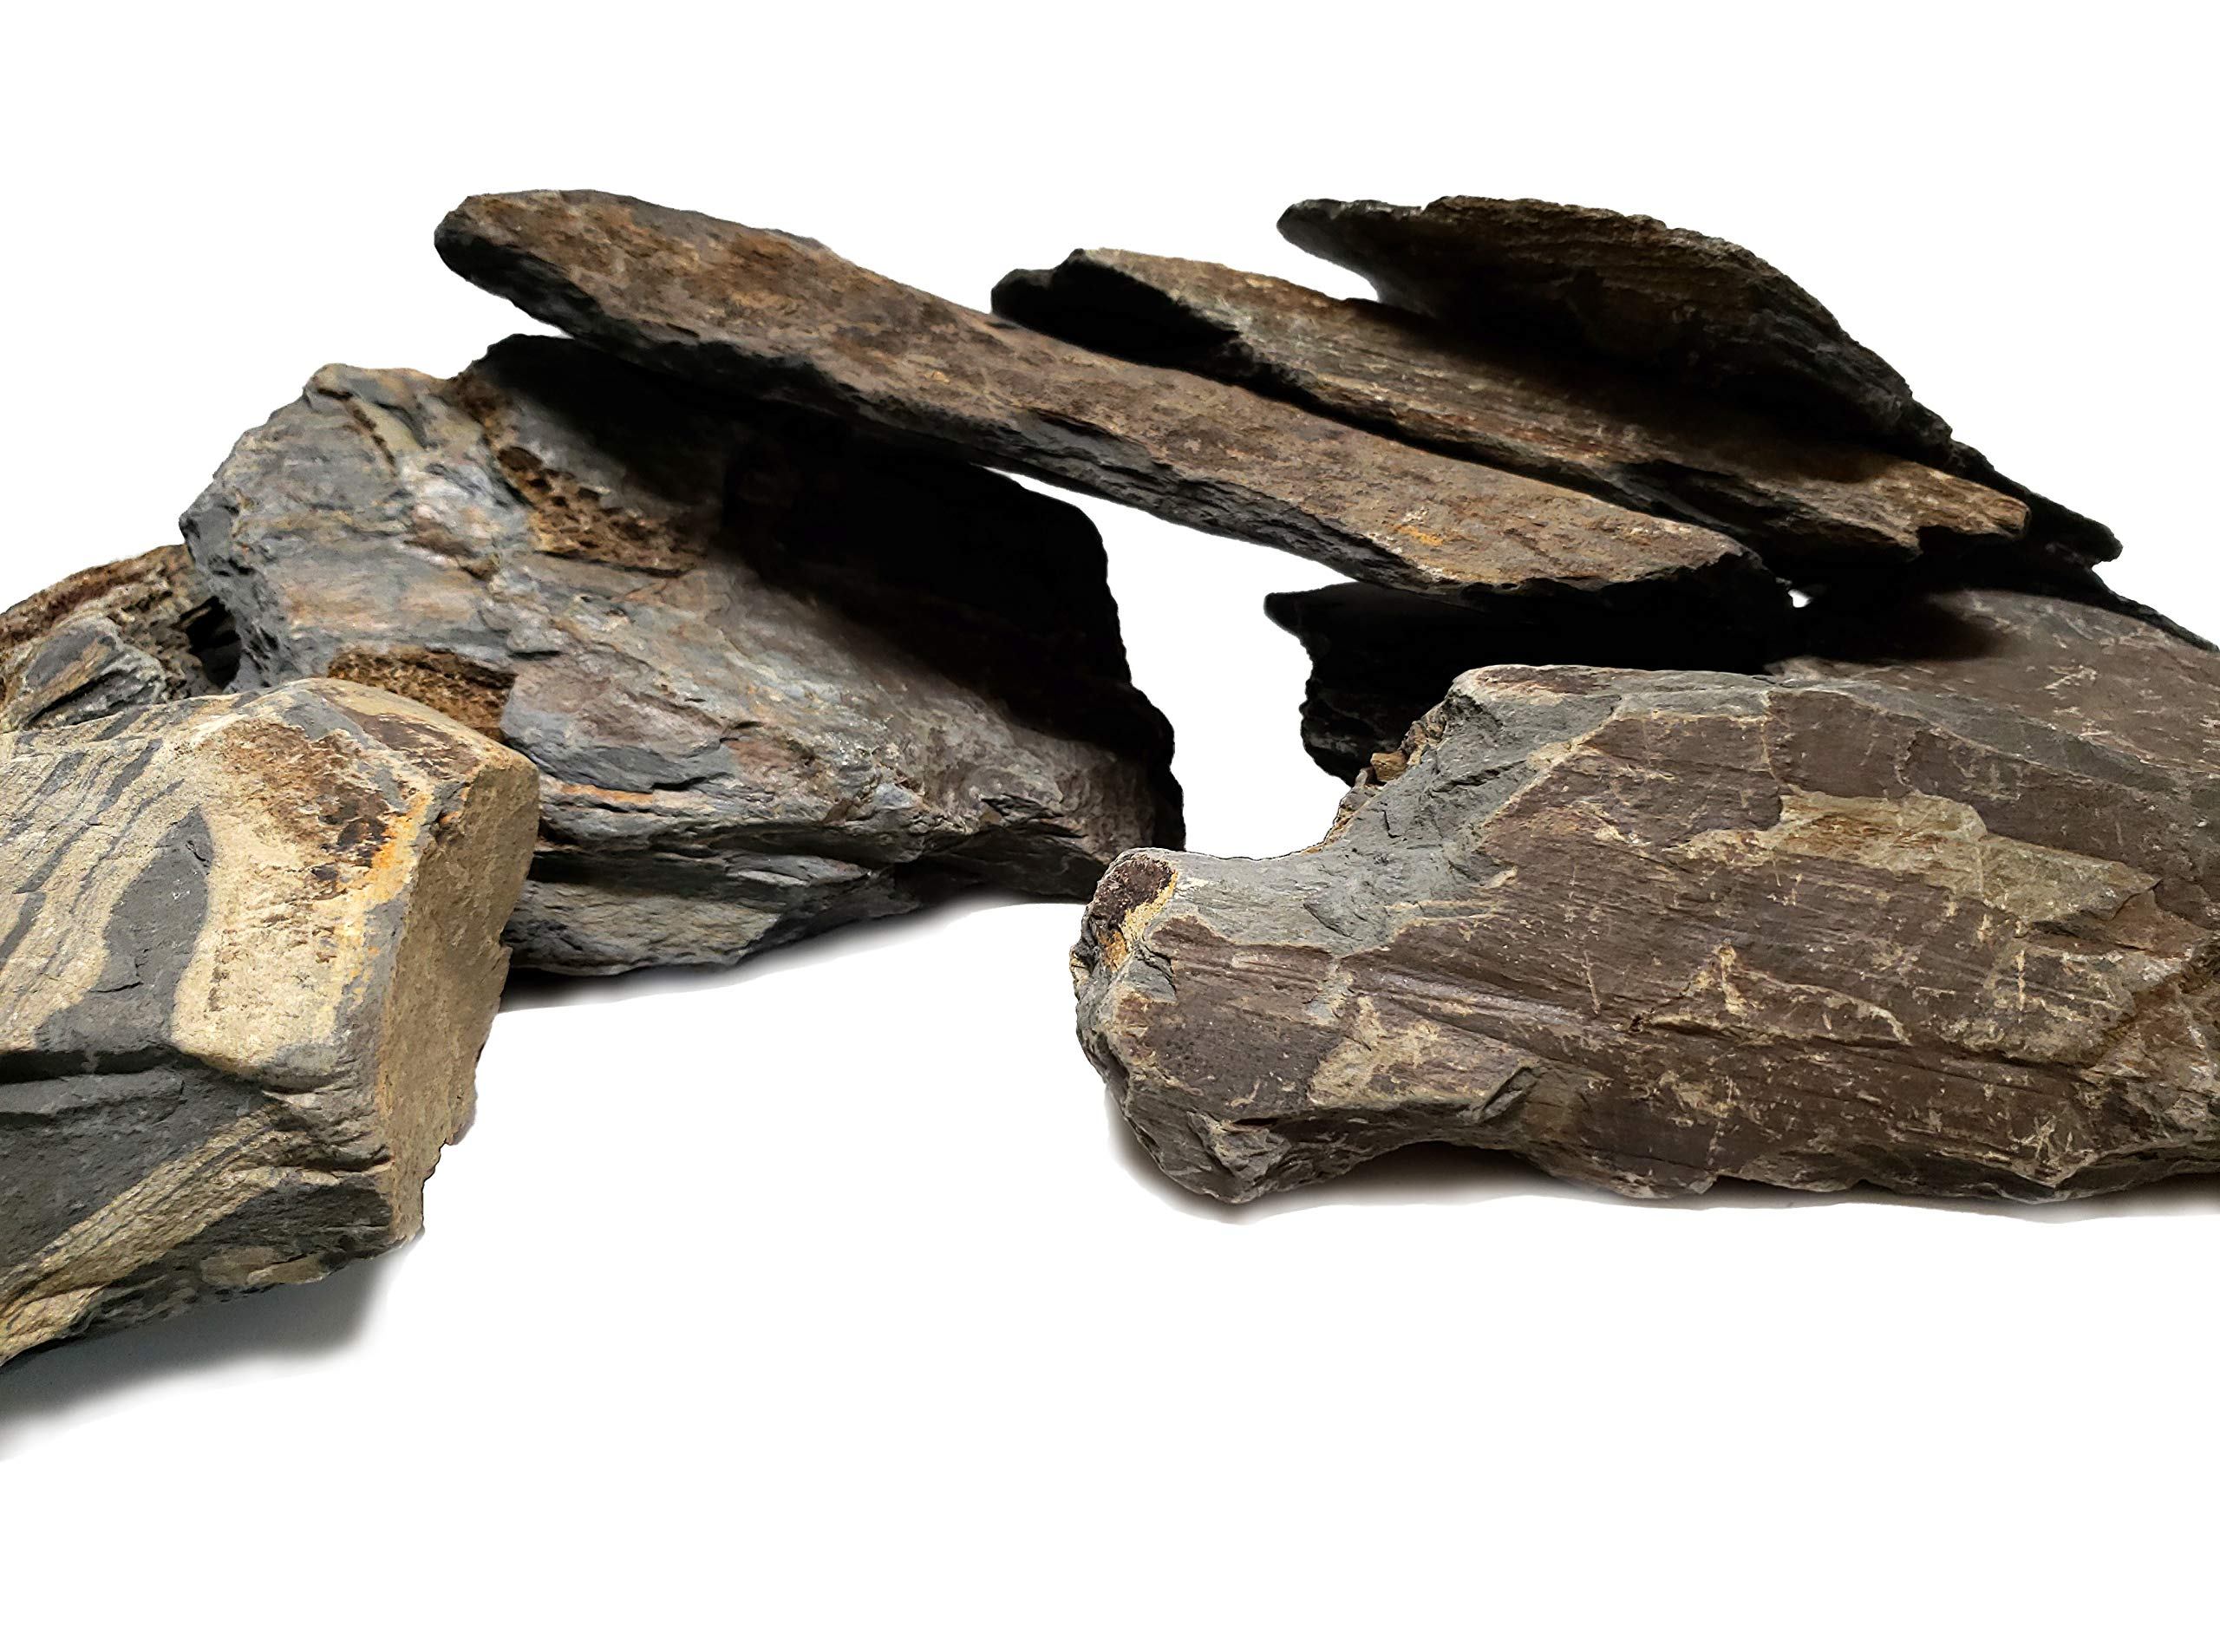 Natural Aquarium Stones Brown/Grey Slate - Size 5 to 7 Inch   PH Neutral. Perfect Rocks for Aquascaping Planted Aquariums, Cichlid and Nano Tanks, Reptile and Amphibian Enclosures (10 lbs) by Small World Slate and Stone